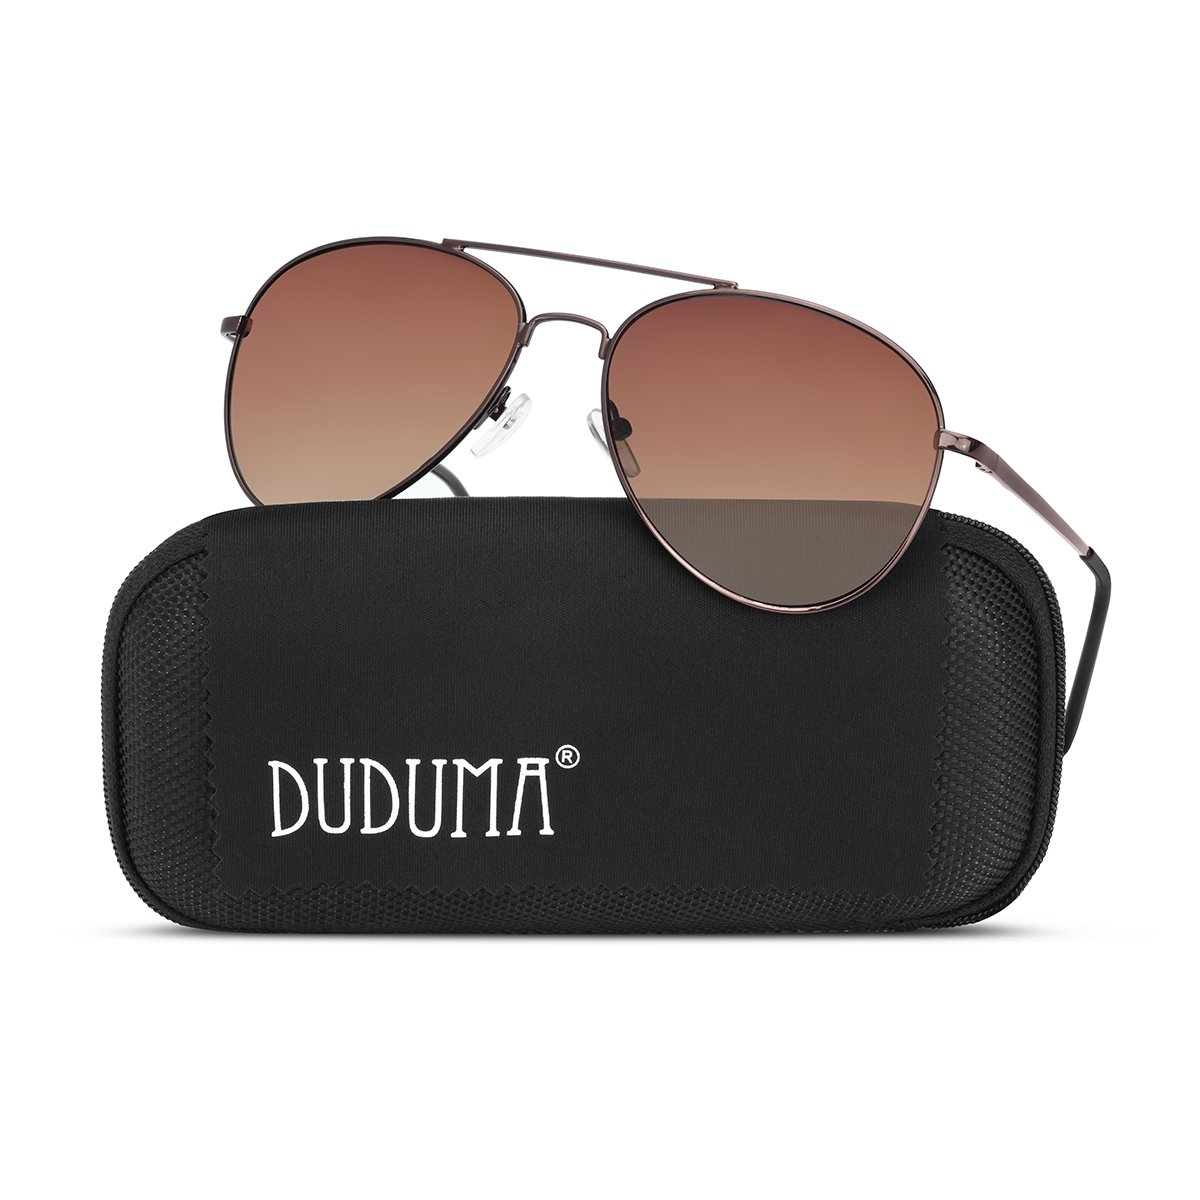 Duduma Premium Classic Aviator Sunglasses with Metal Frame Uv400 Protection (Coffee frame/brown lens(not Mirrored Lens)) by Duduma